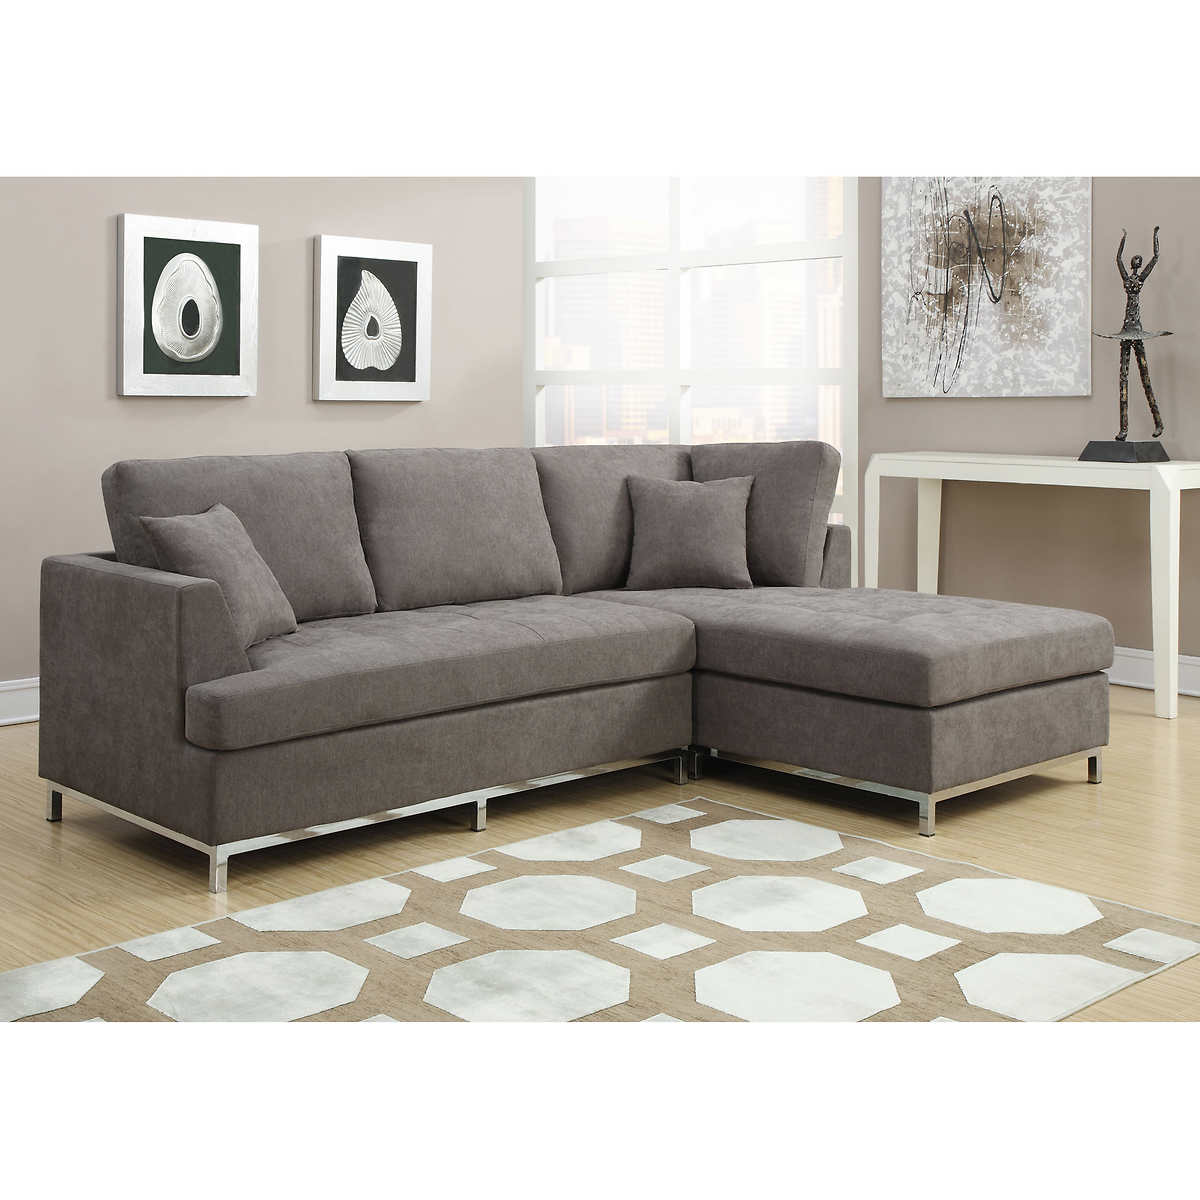 Deep Sectional Sofa | Costco Recliner Sofa | Costco Leather Sectional